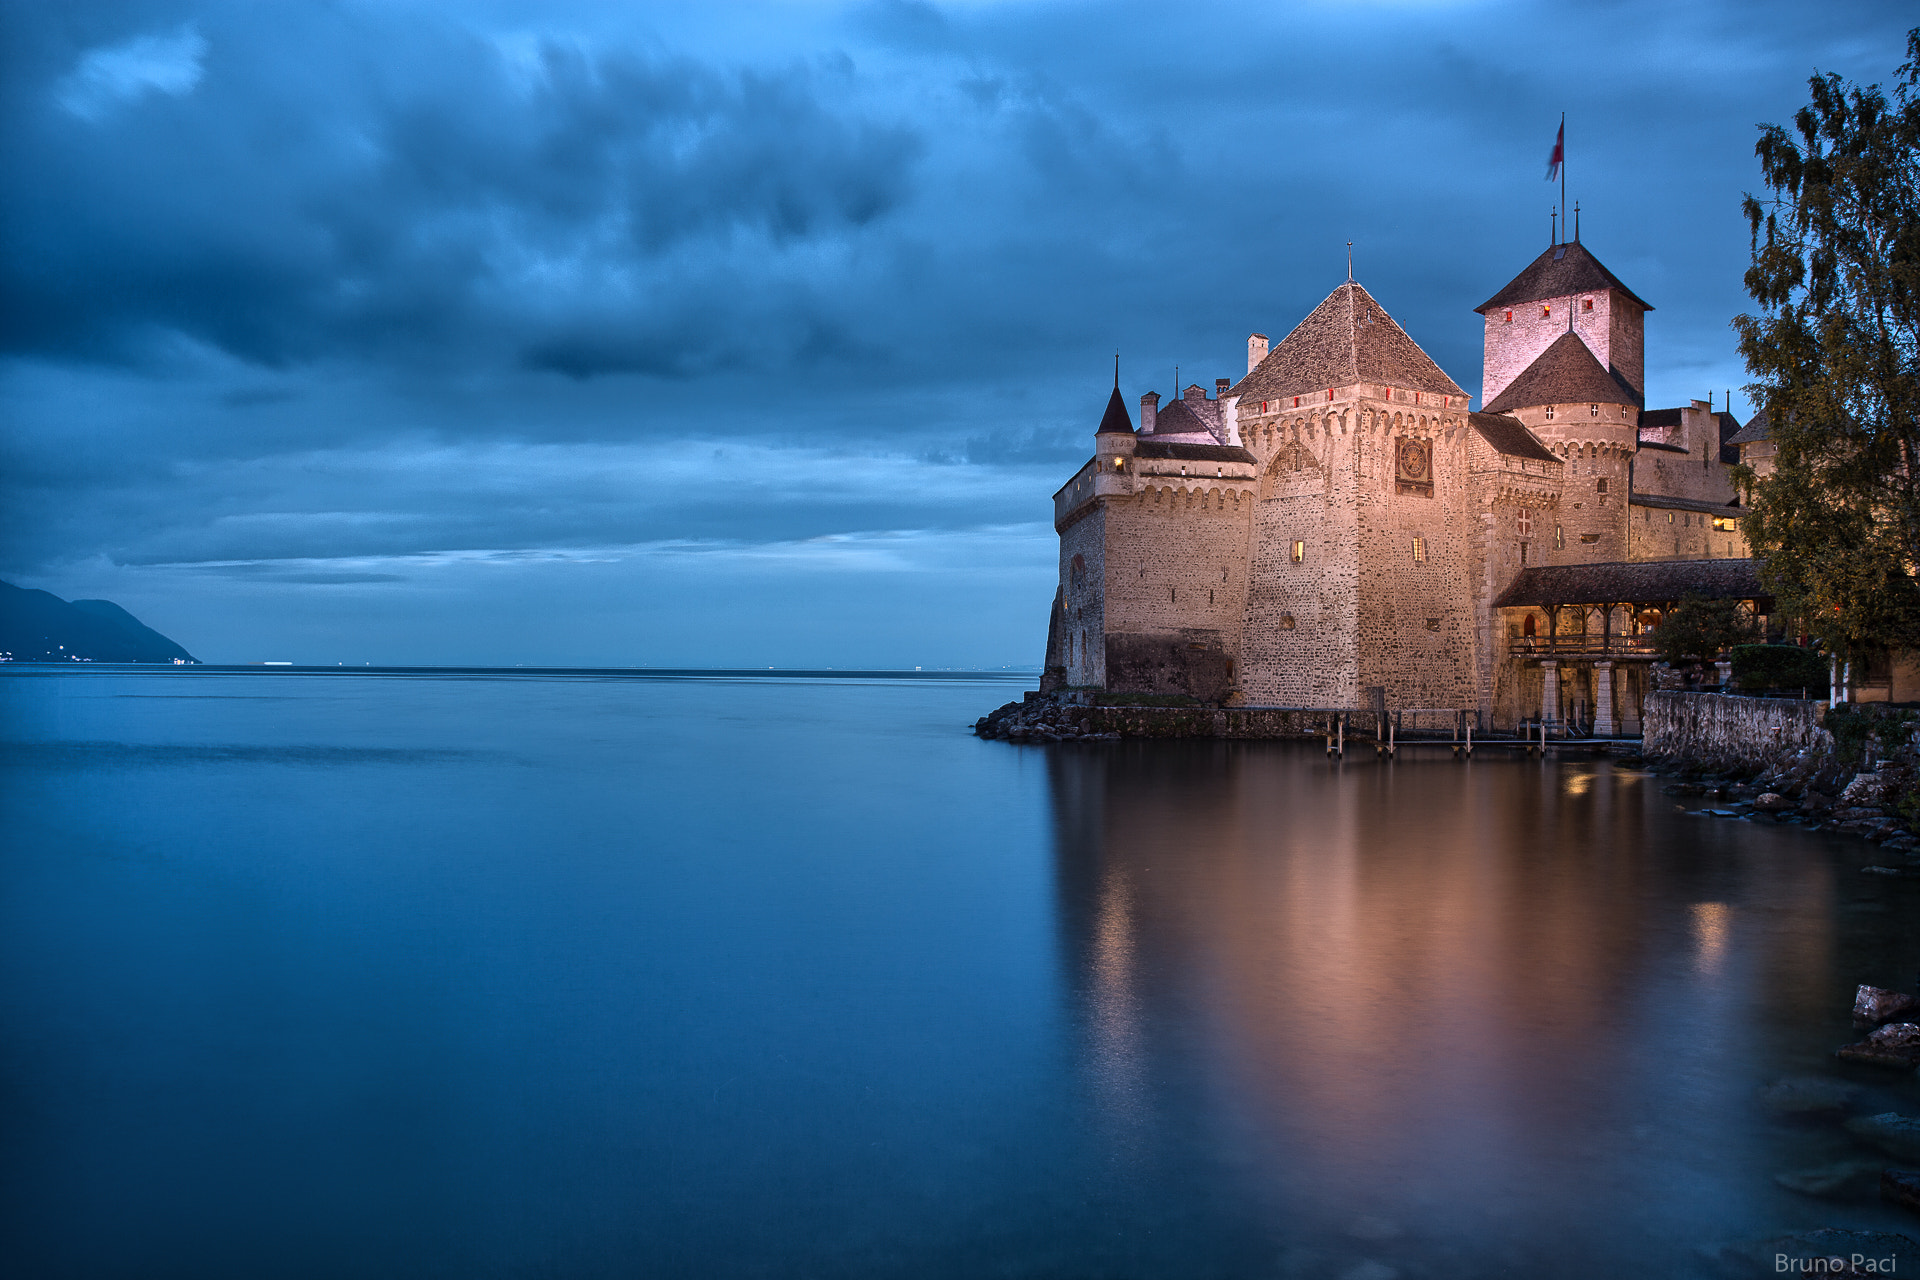 Photograph Chillon Castle by Bruno Paci on 500px